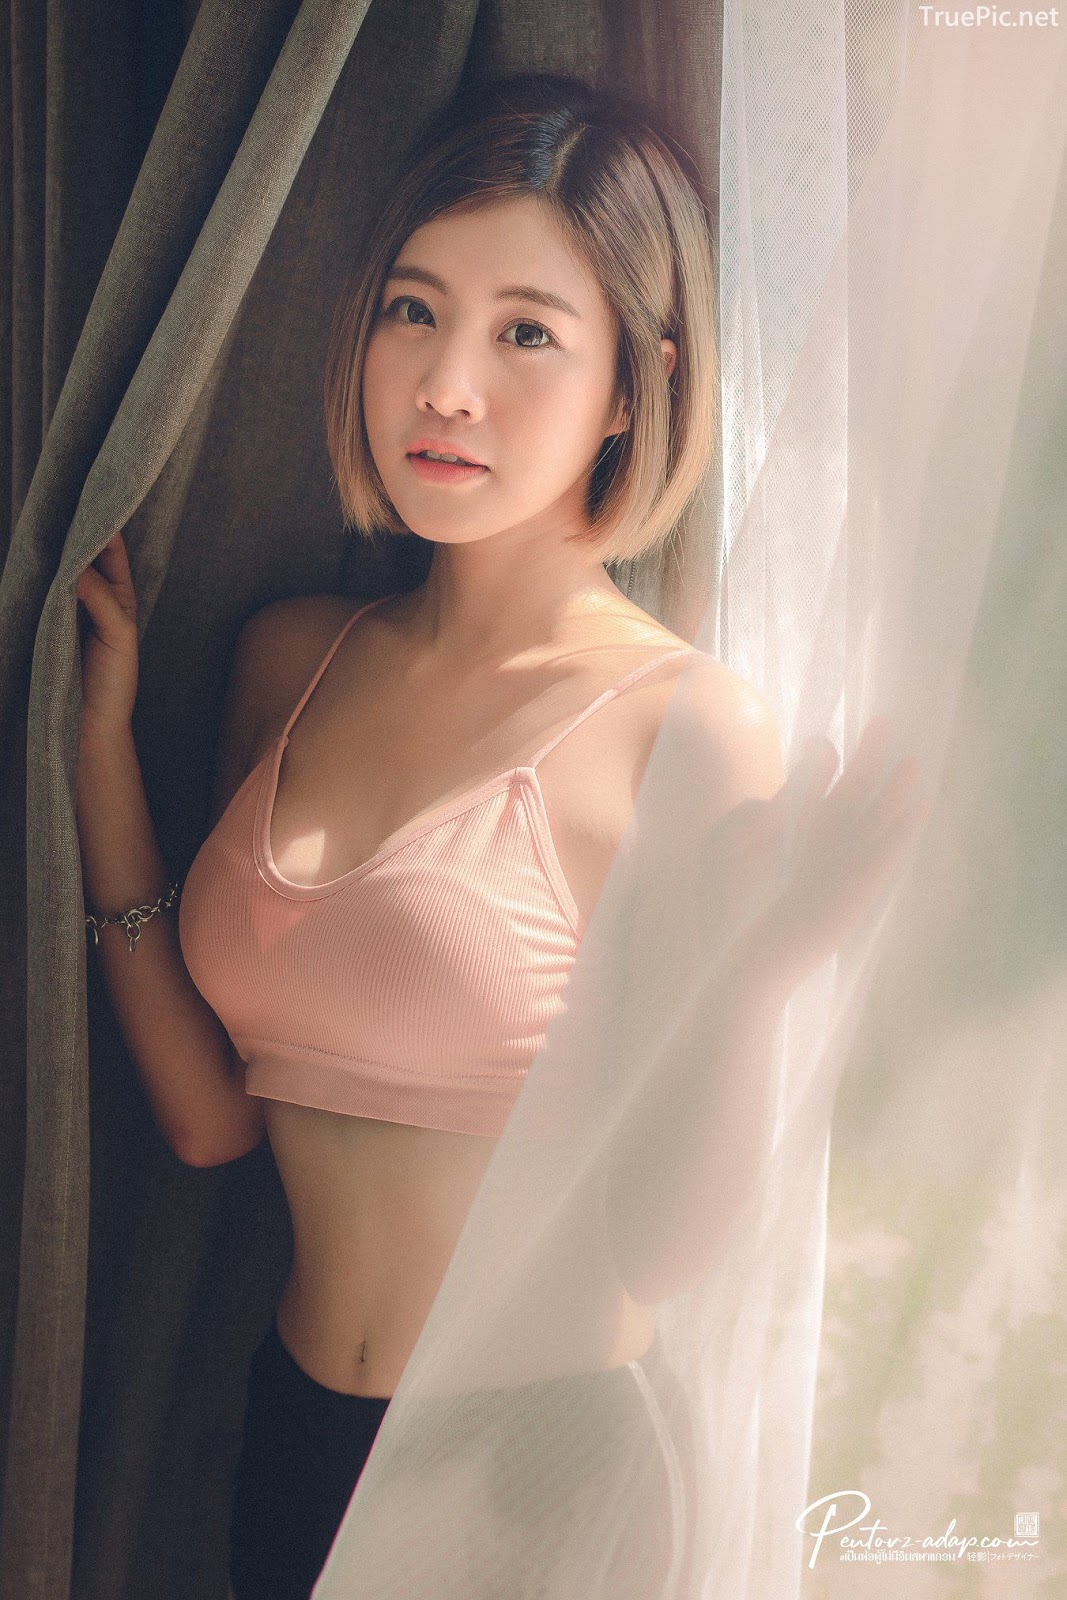 Thailand Cute Model - Fah Chatchaya Suthisuwan - Pink Lovely Fitness Sports Bra - TruePic.net - Picture 2